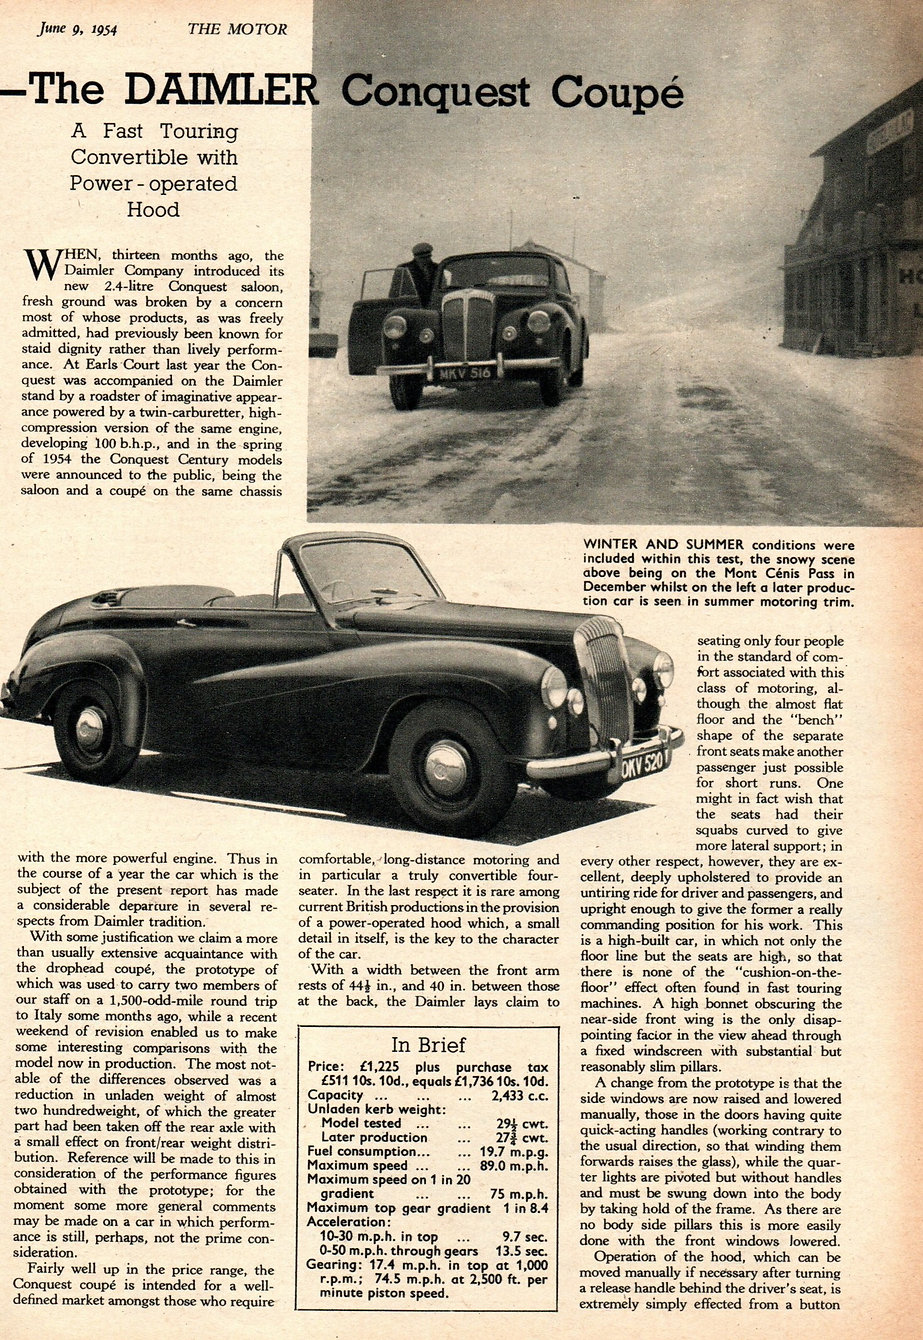 Daimler Conquest DHC The Motor 9 June 19